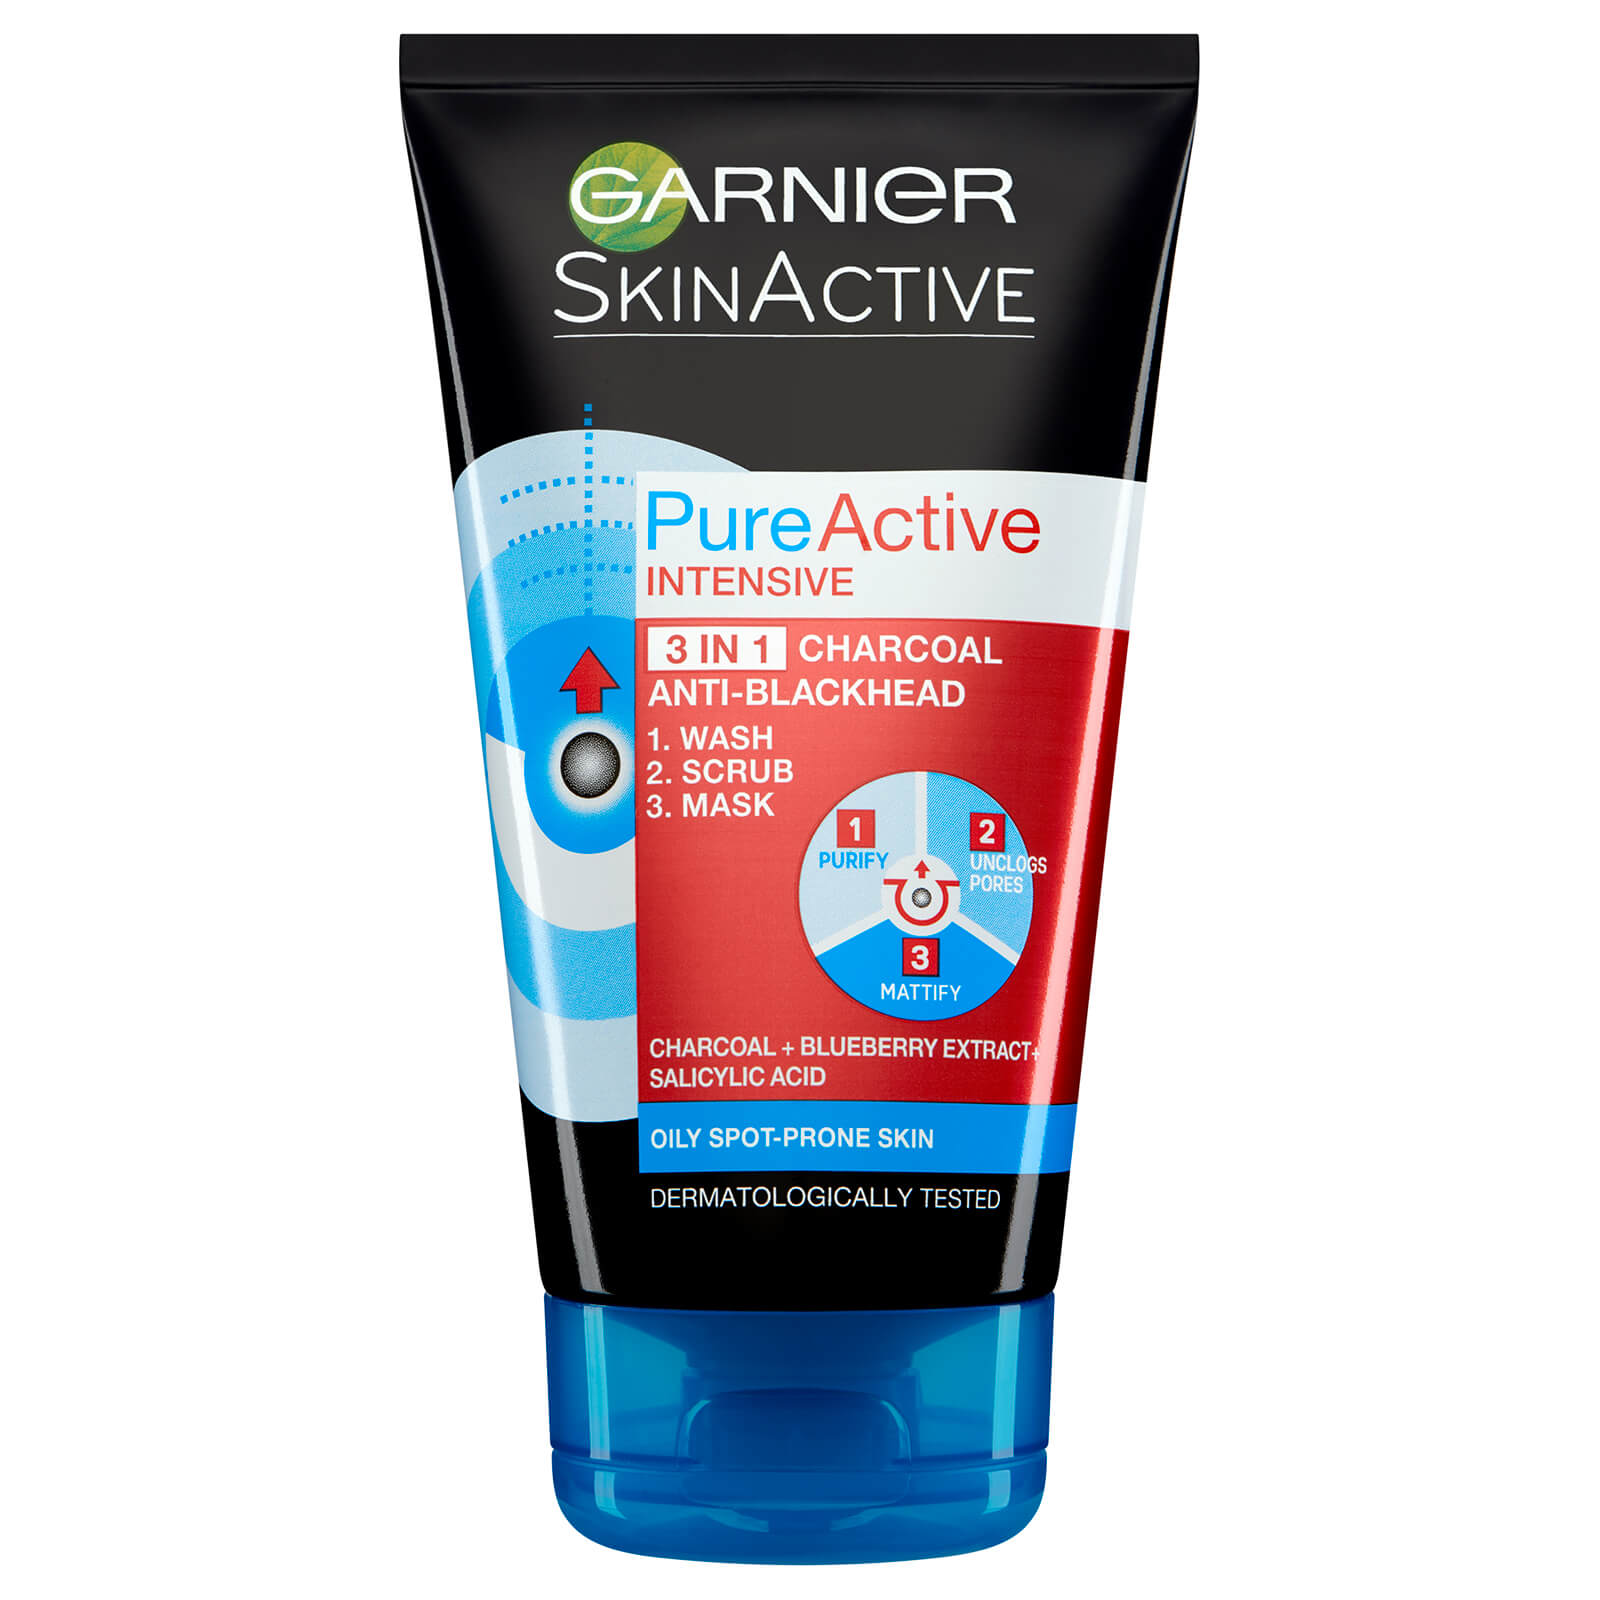 Garnier Pure Active Intensive 3 In 1 Anti-Blackhead Charcoal Wash, Scrub And Mask